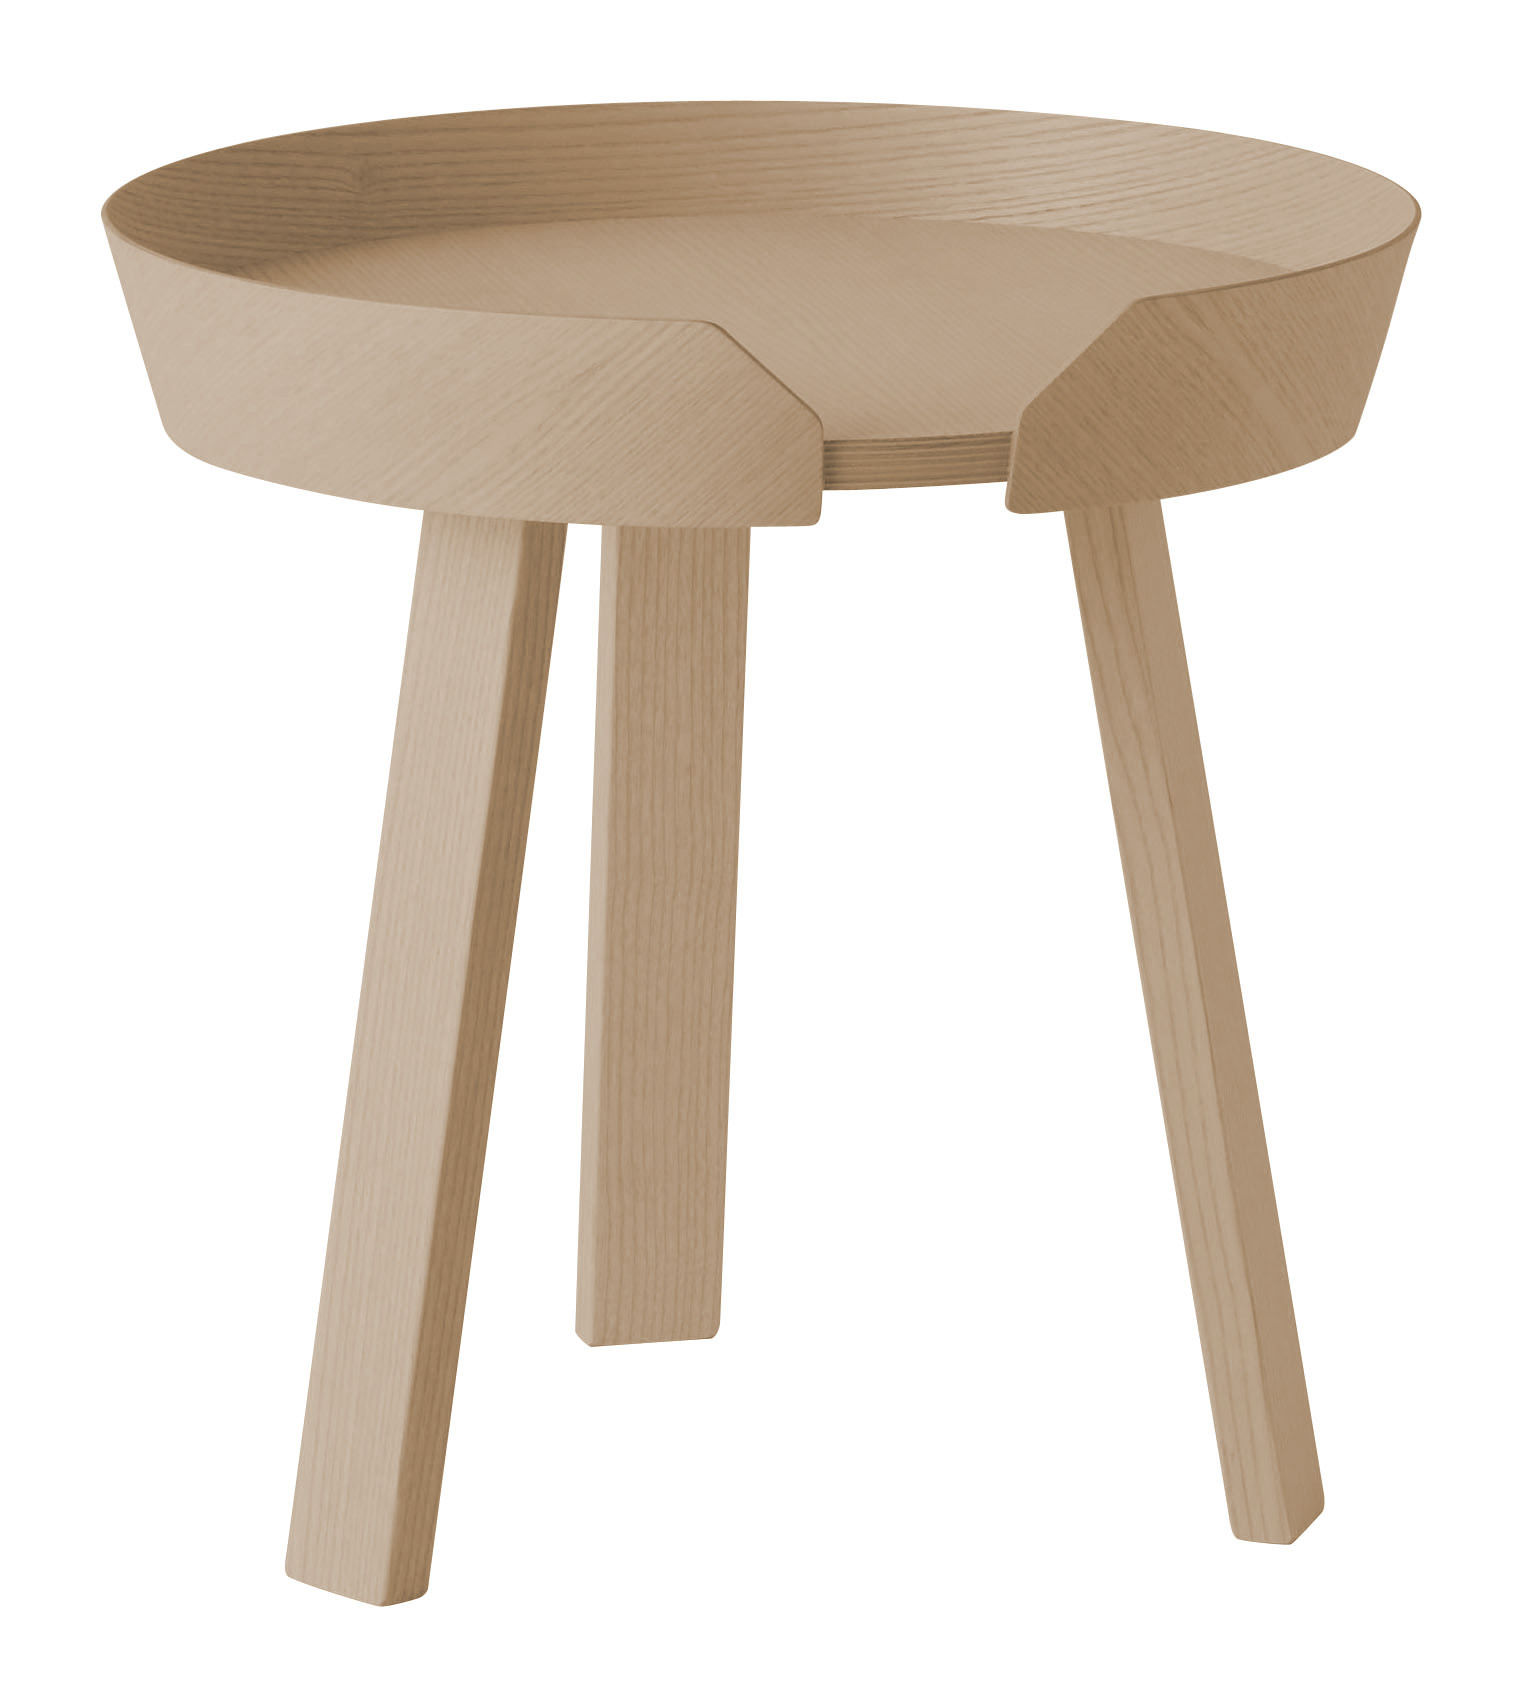 Made In Design Table Basse Table Basse Around Small Ø 45 X H 46 Cm Chêne Naturel